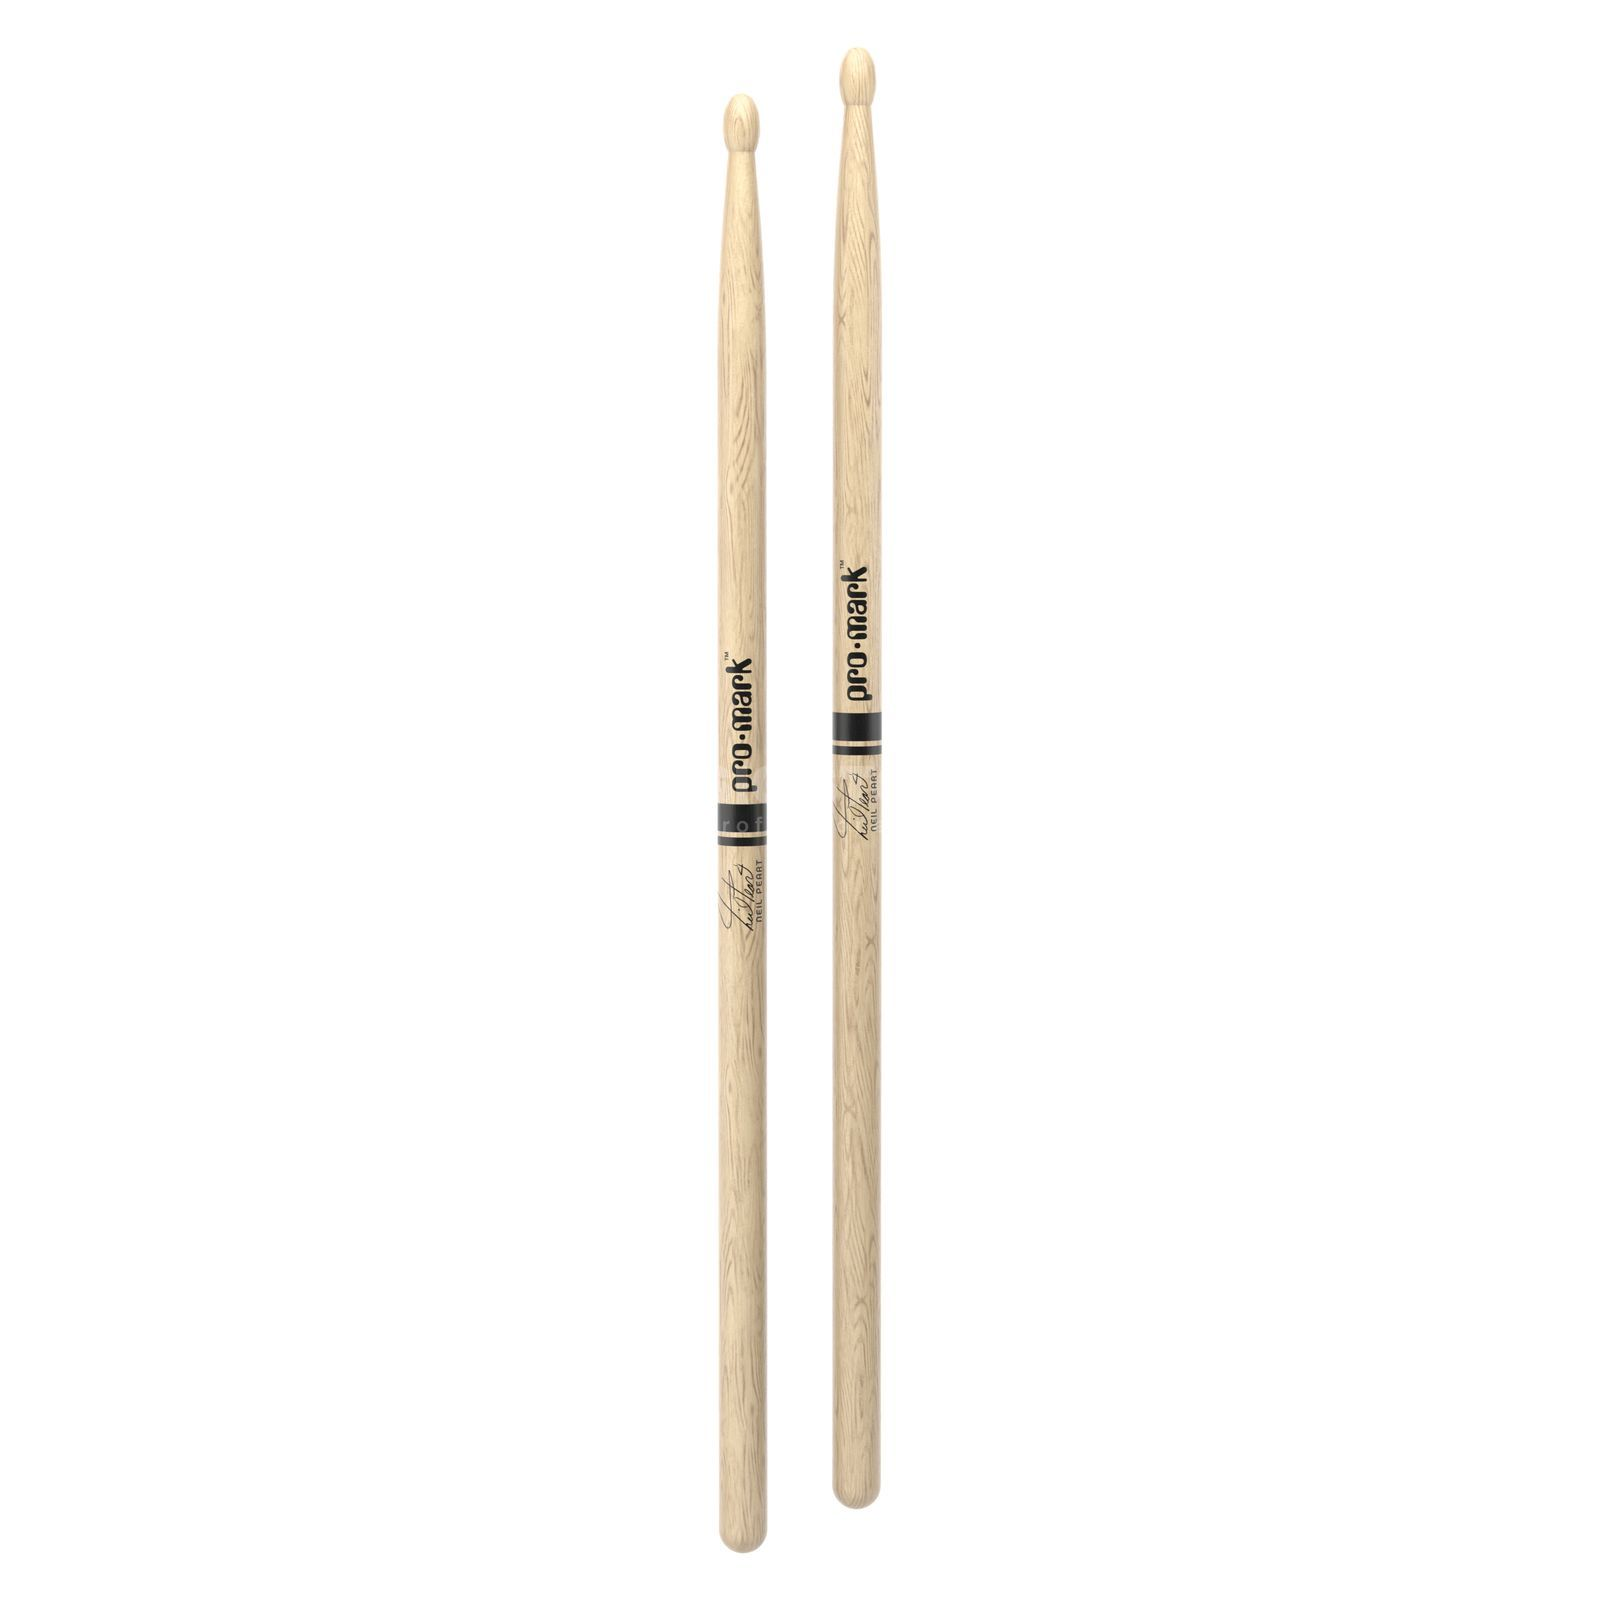 PRO-MARK PW747W Neil Peart Sticks White Oak Изображение товара